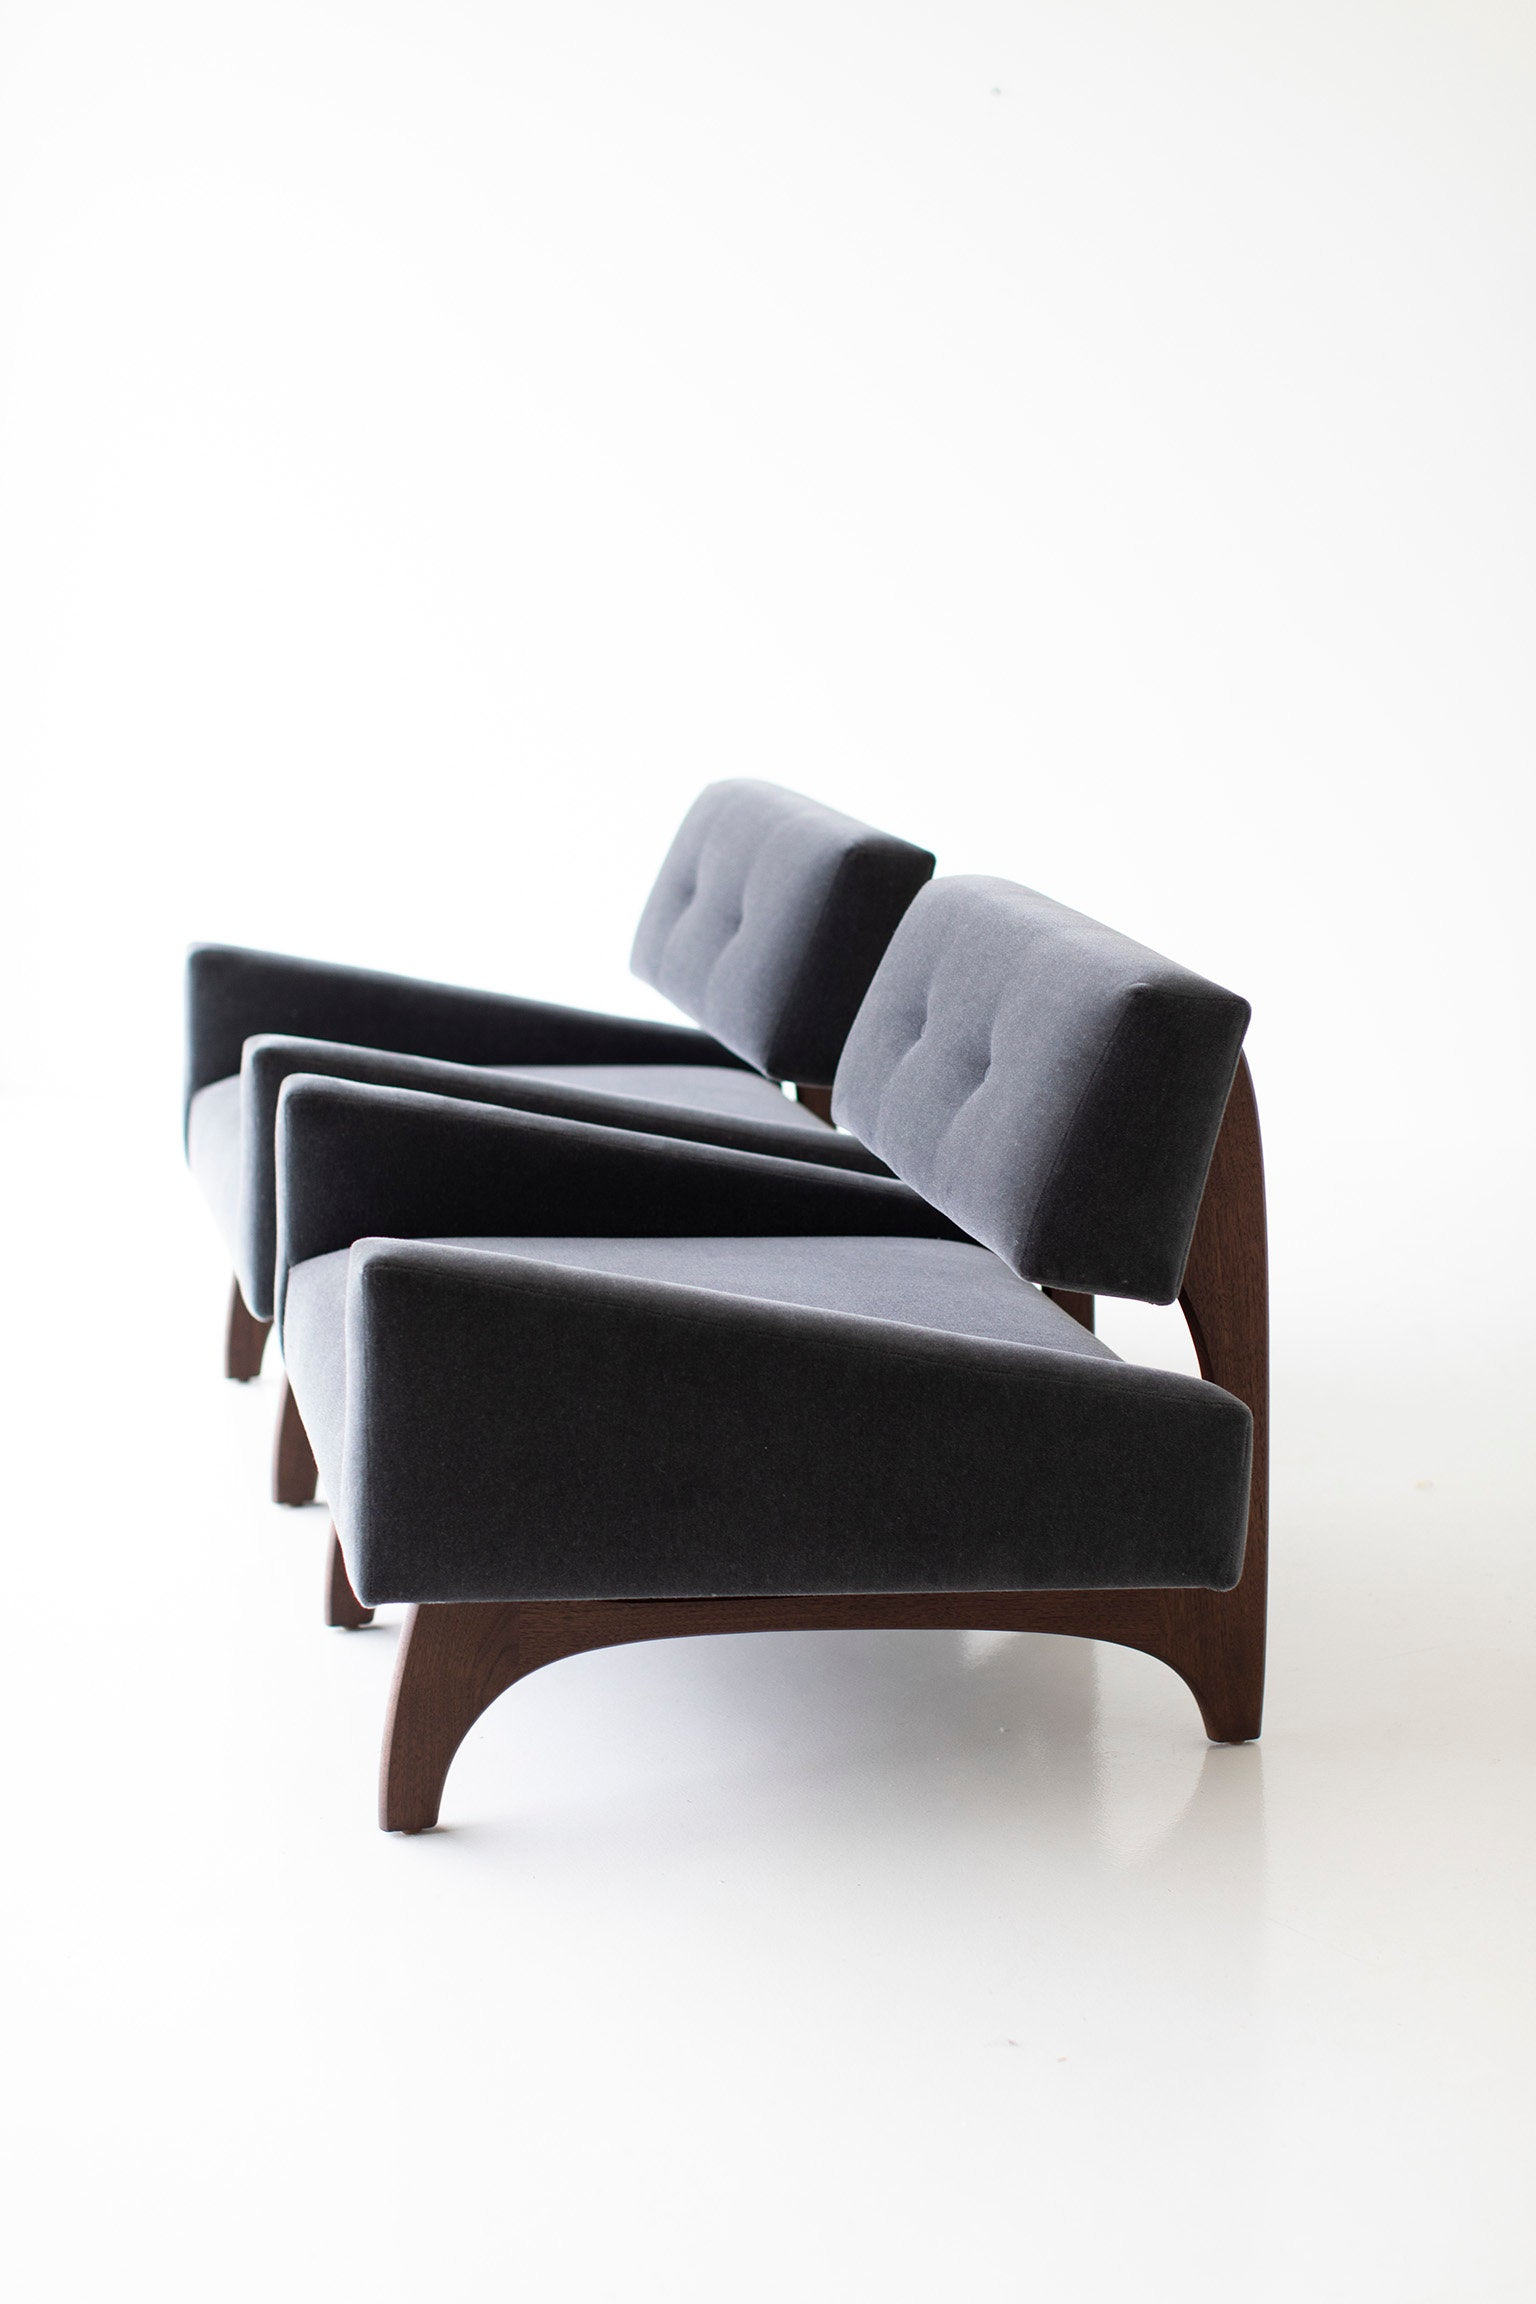 Wool-lounge-chair-1519-02